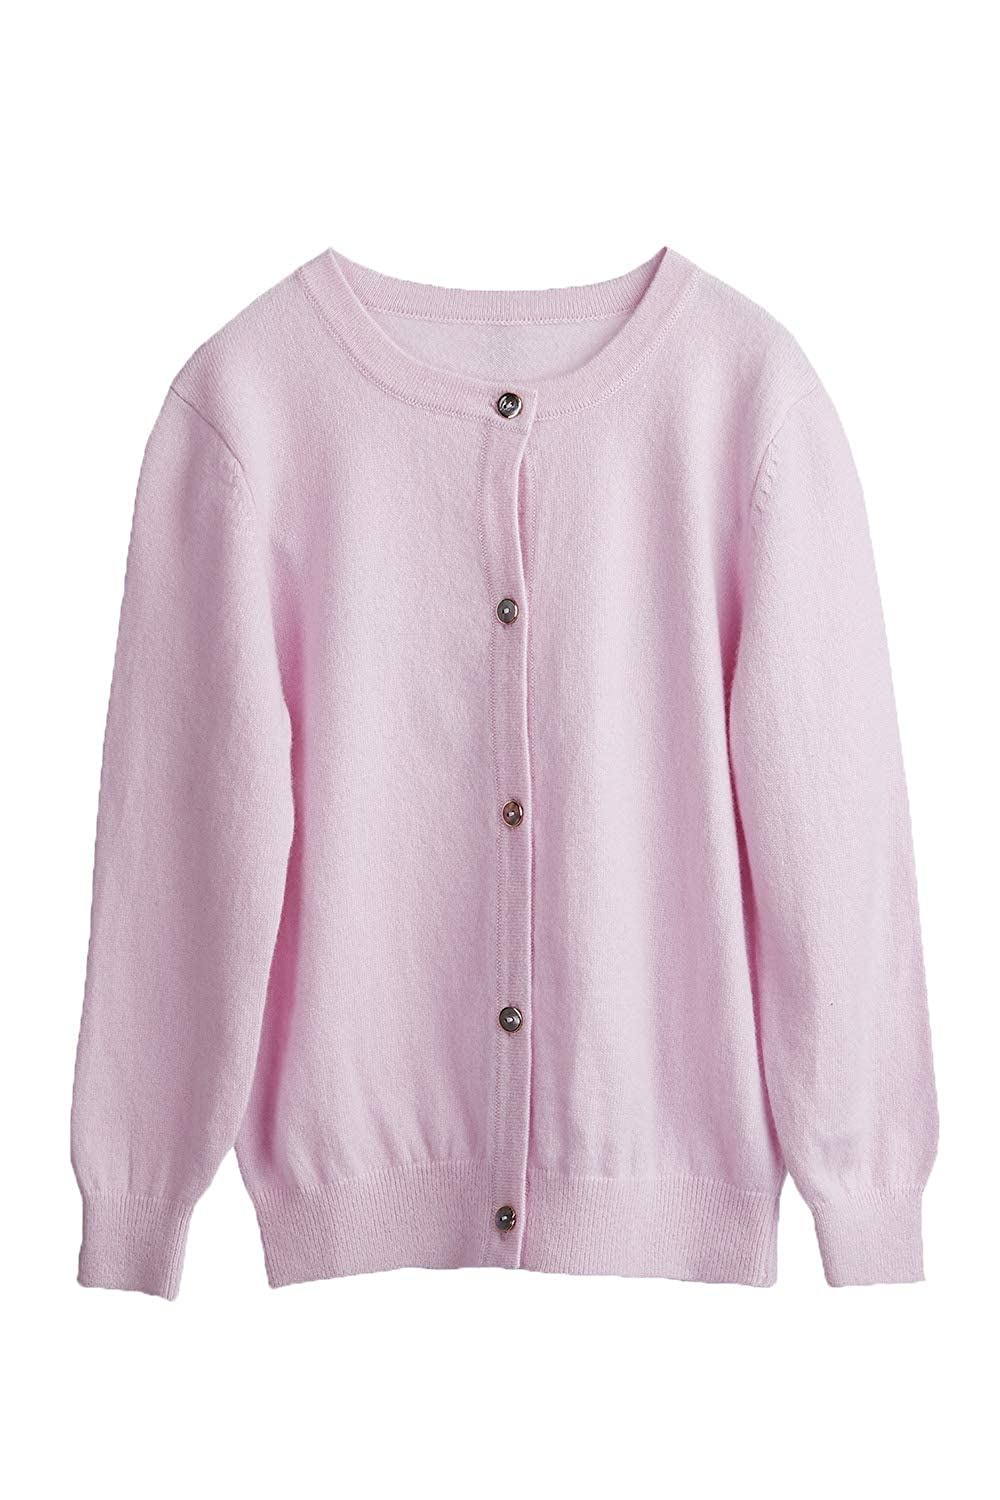 CHARIXI Baby Girls 100/% Pure Cashmere Long Sleeve Crew Neck Cardigan Sweater